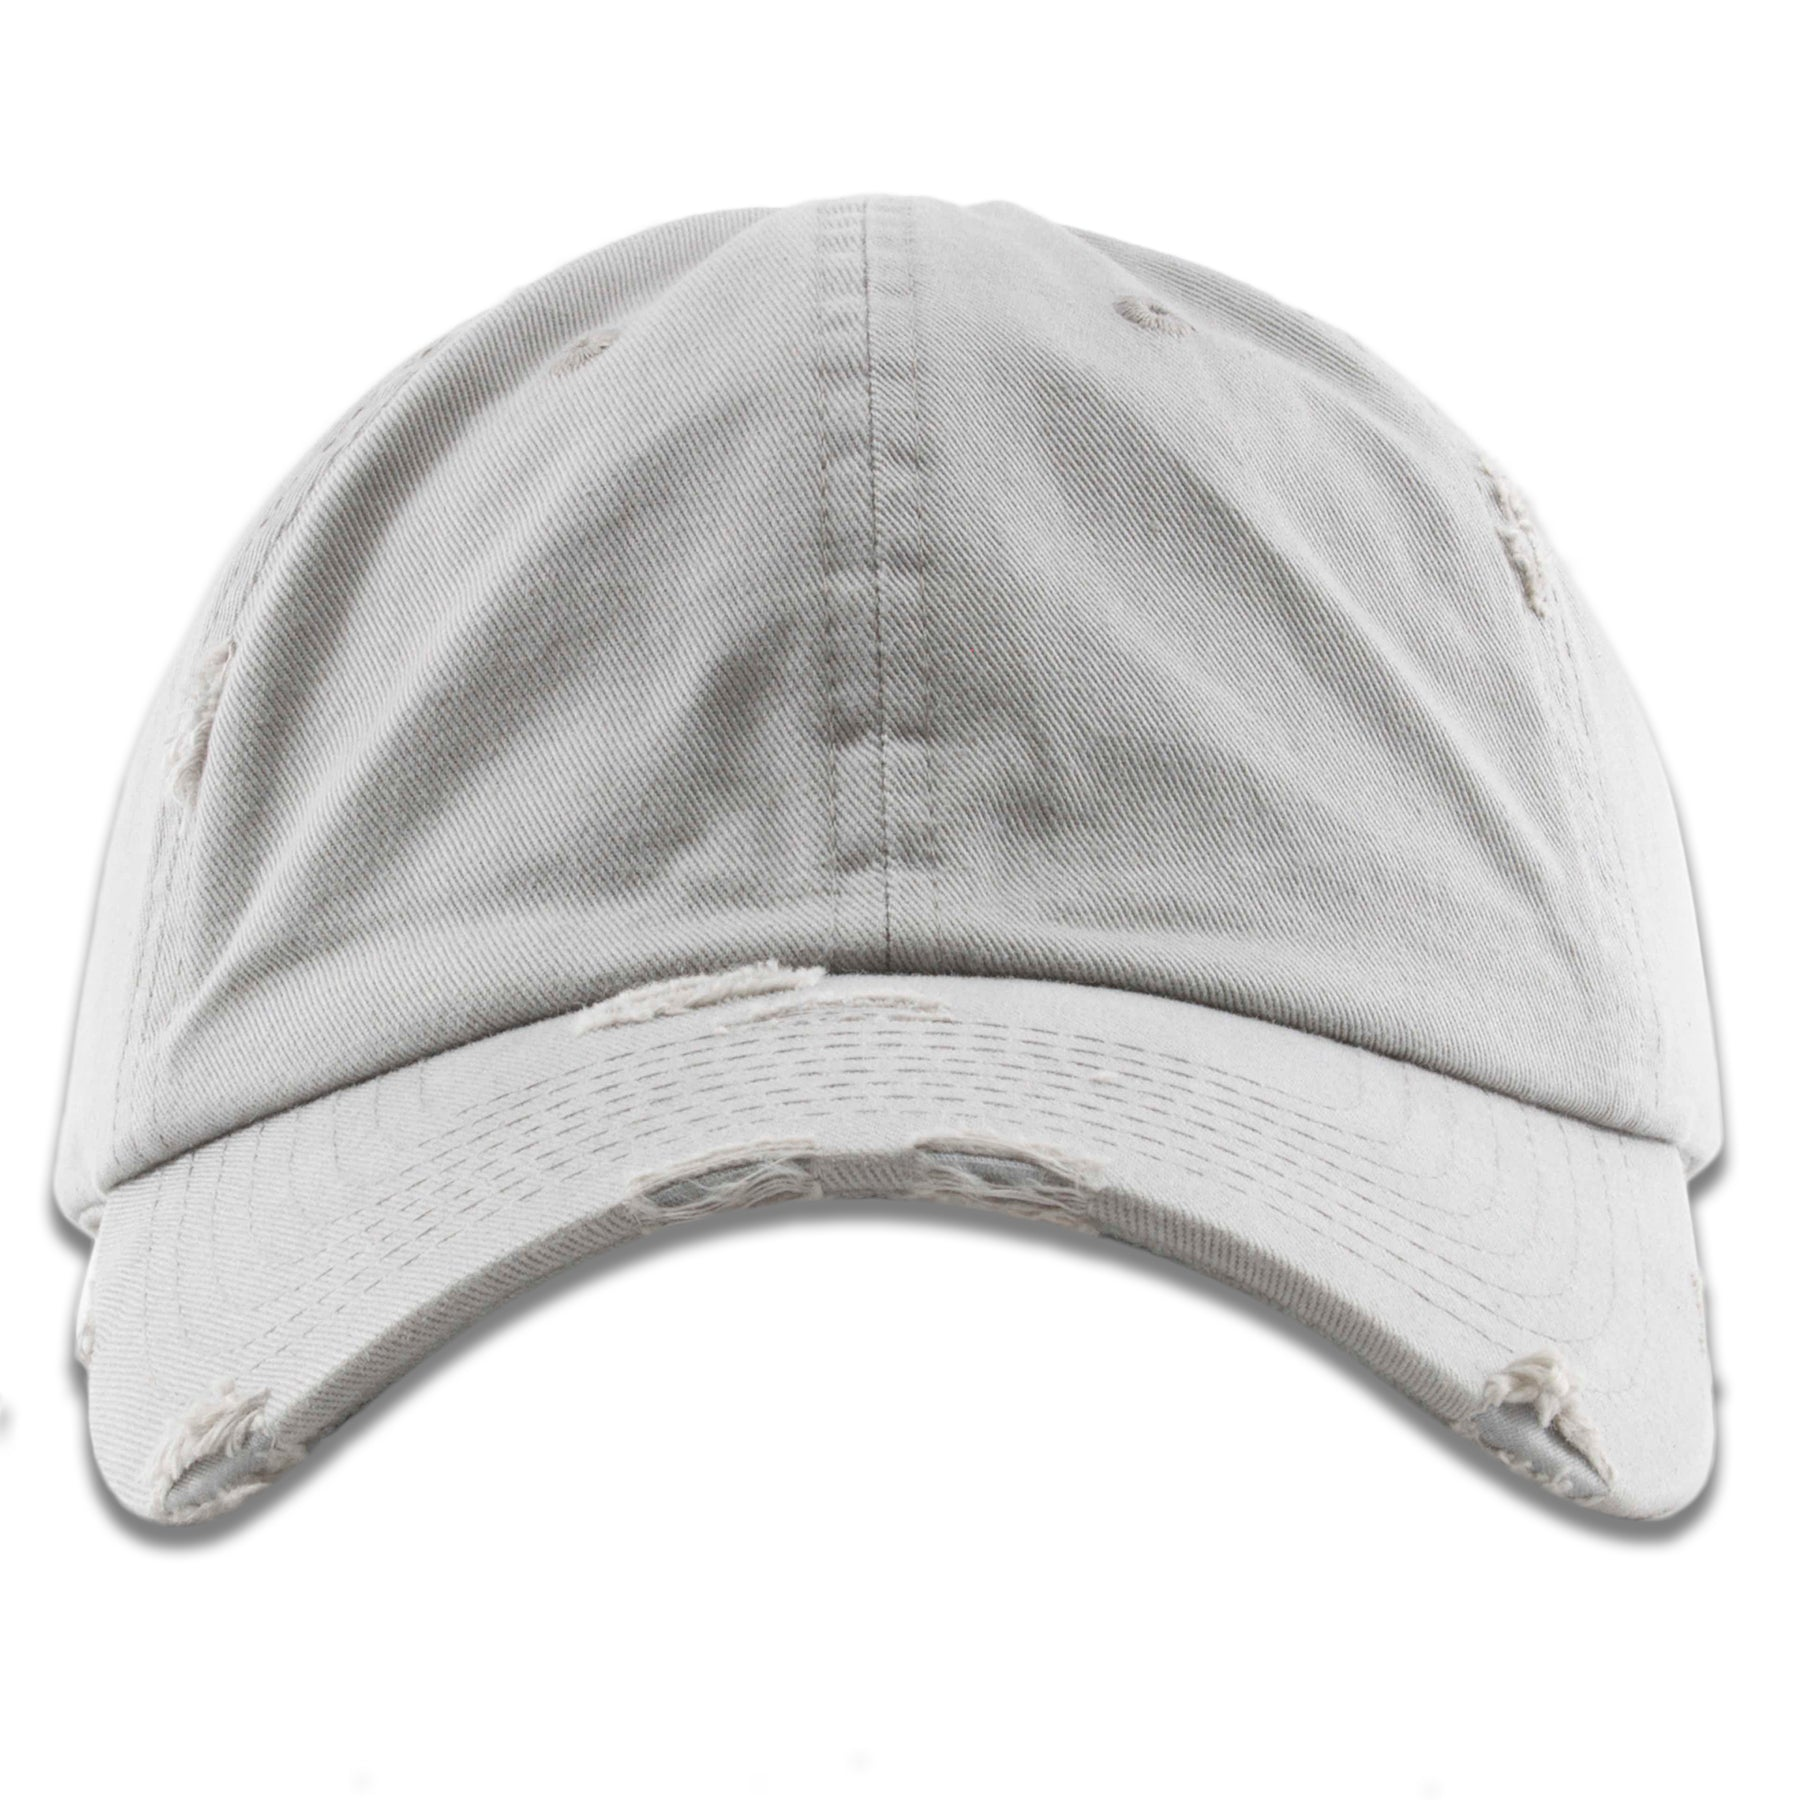 8df4c5138d363e The light gray distressed blank baseball cap has a soft unstructured crown  and a bent brim